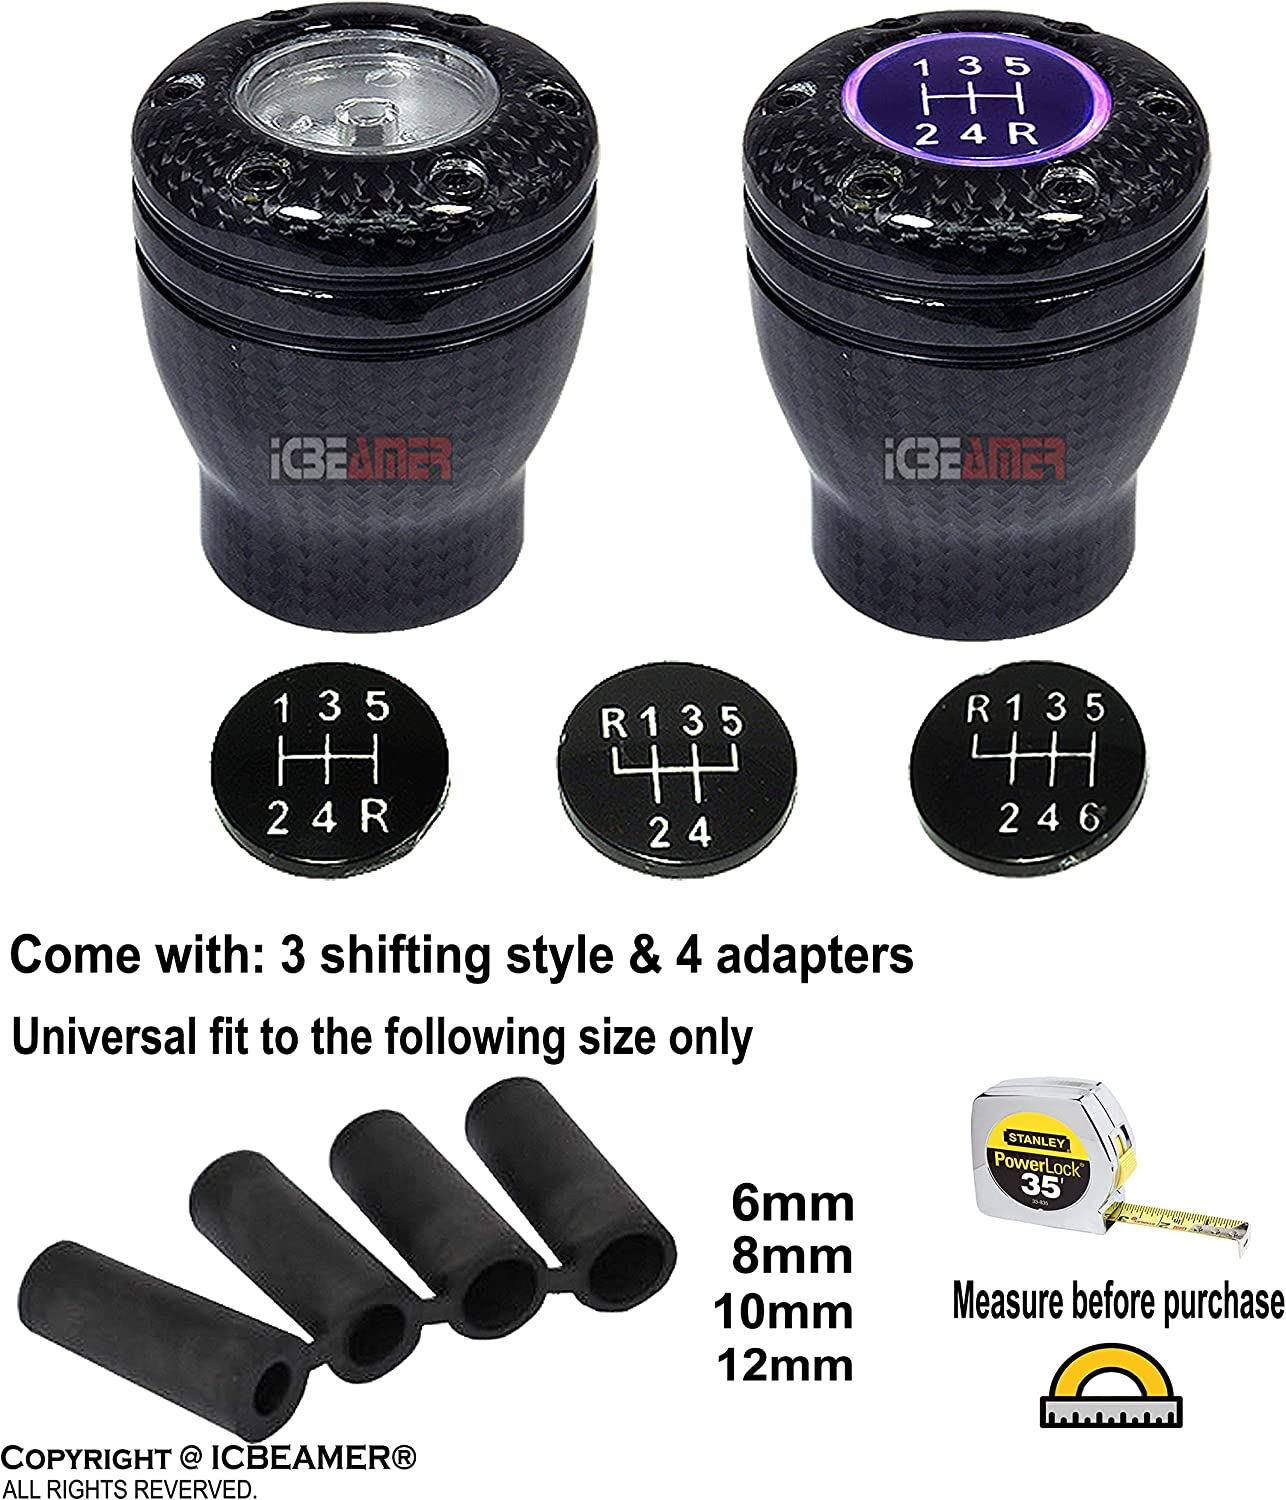 ICBEAMER 100/% Carbon Fiber Shift Knob 5 6 Speed Stick Manual Transmission with Blue LED Light /& 2 pcs CR2032 Battery